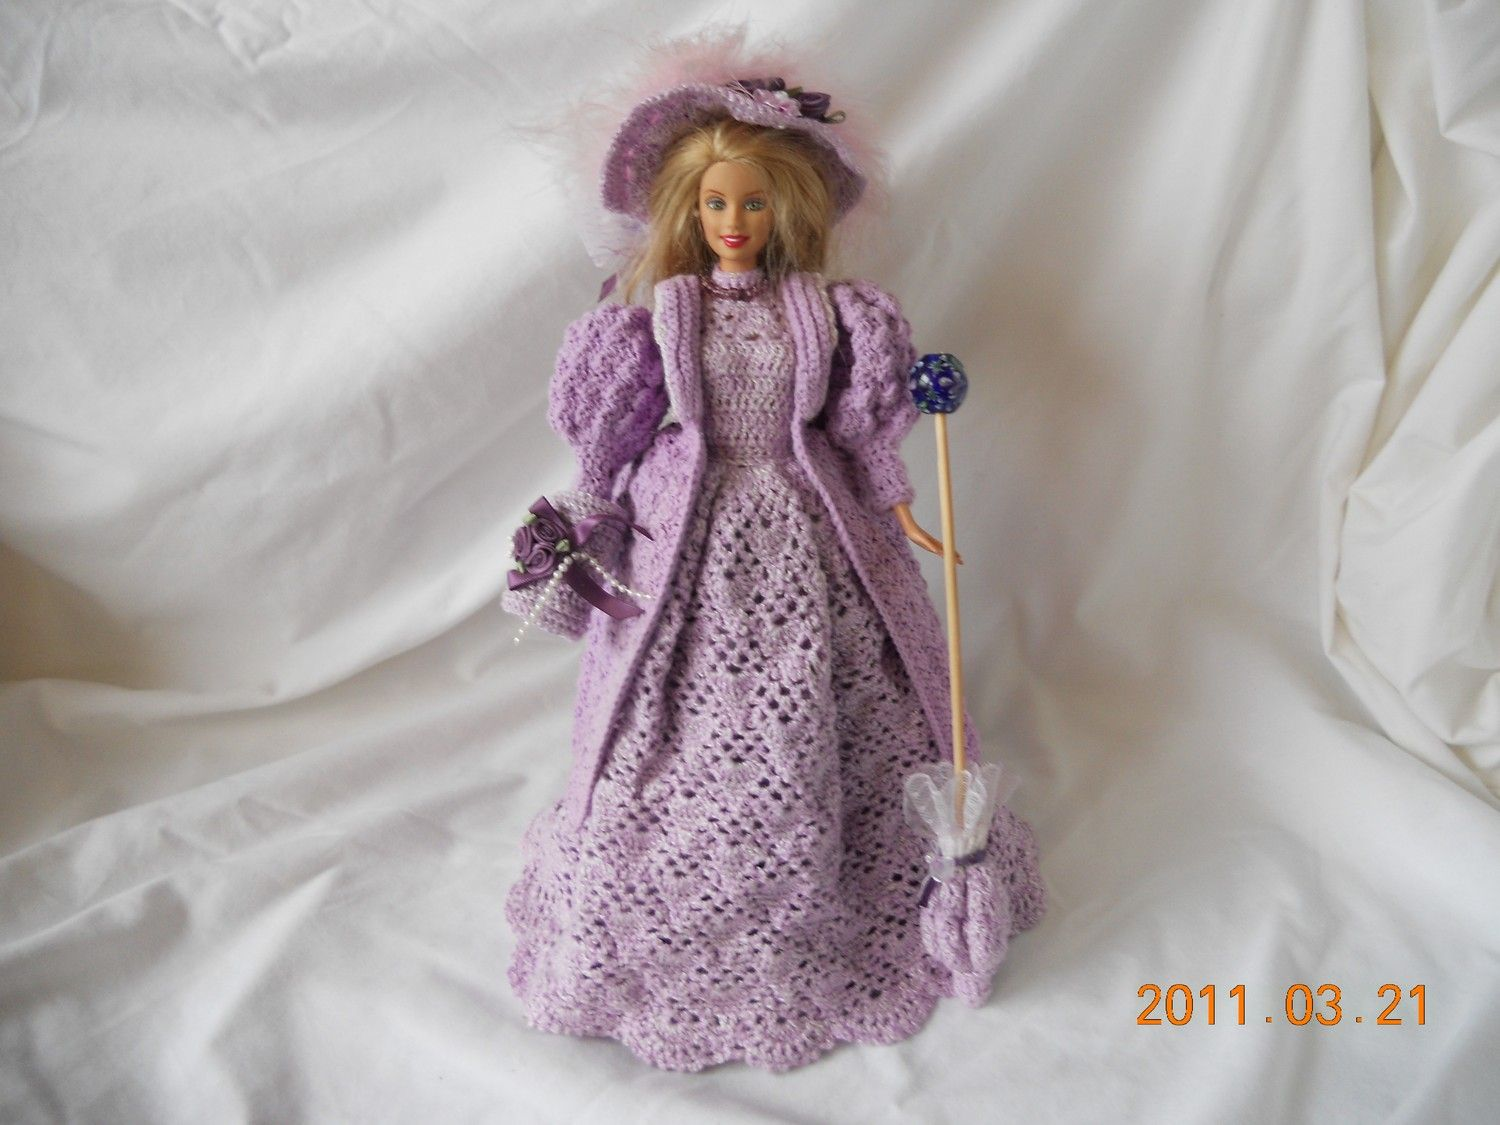 Barbie clothes patterns free crochet how to make free barbie barbie clothes patterns free crochet how to make free barbie crocheted clothes ehow bankloansurffo Image collections